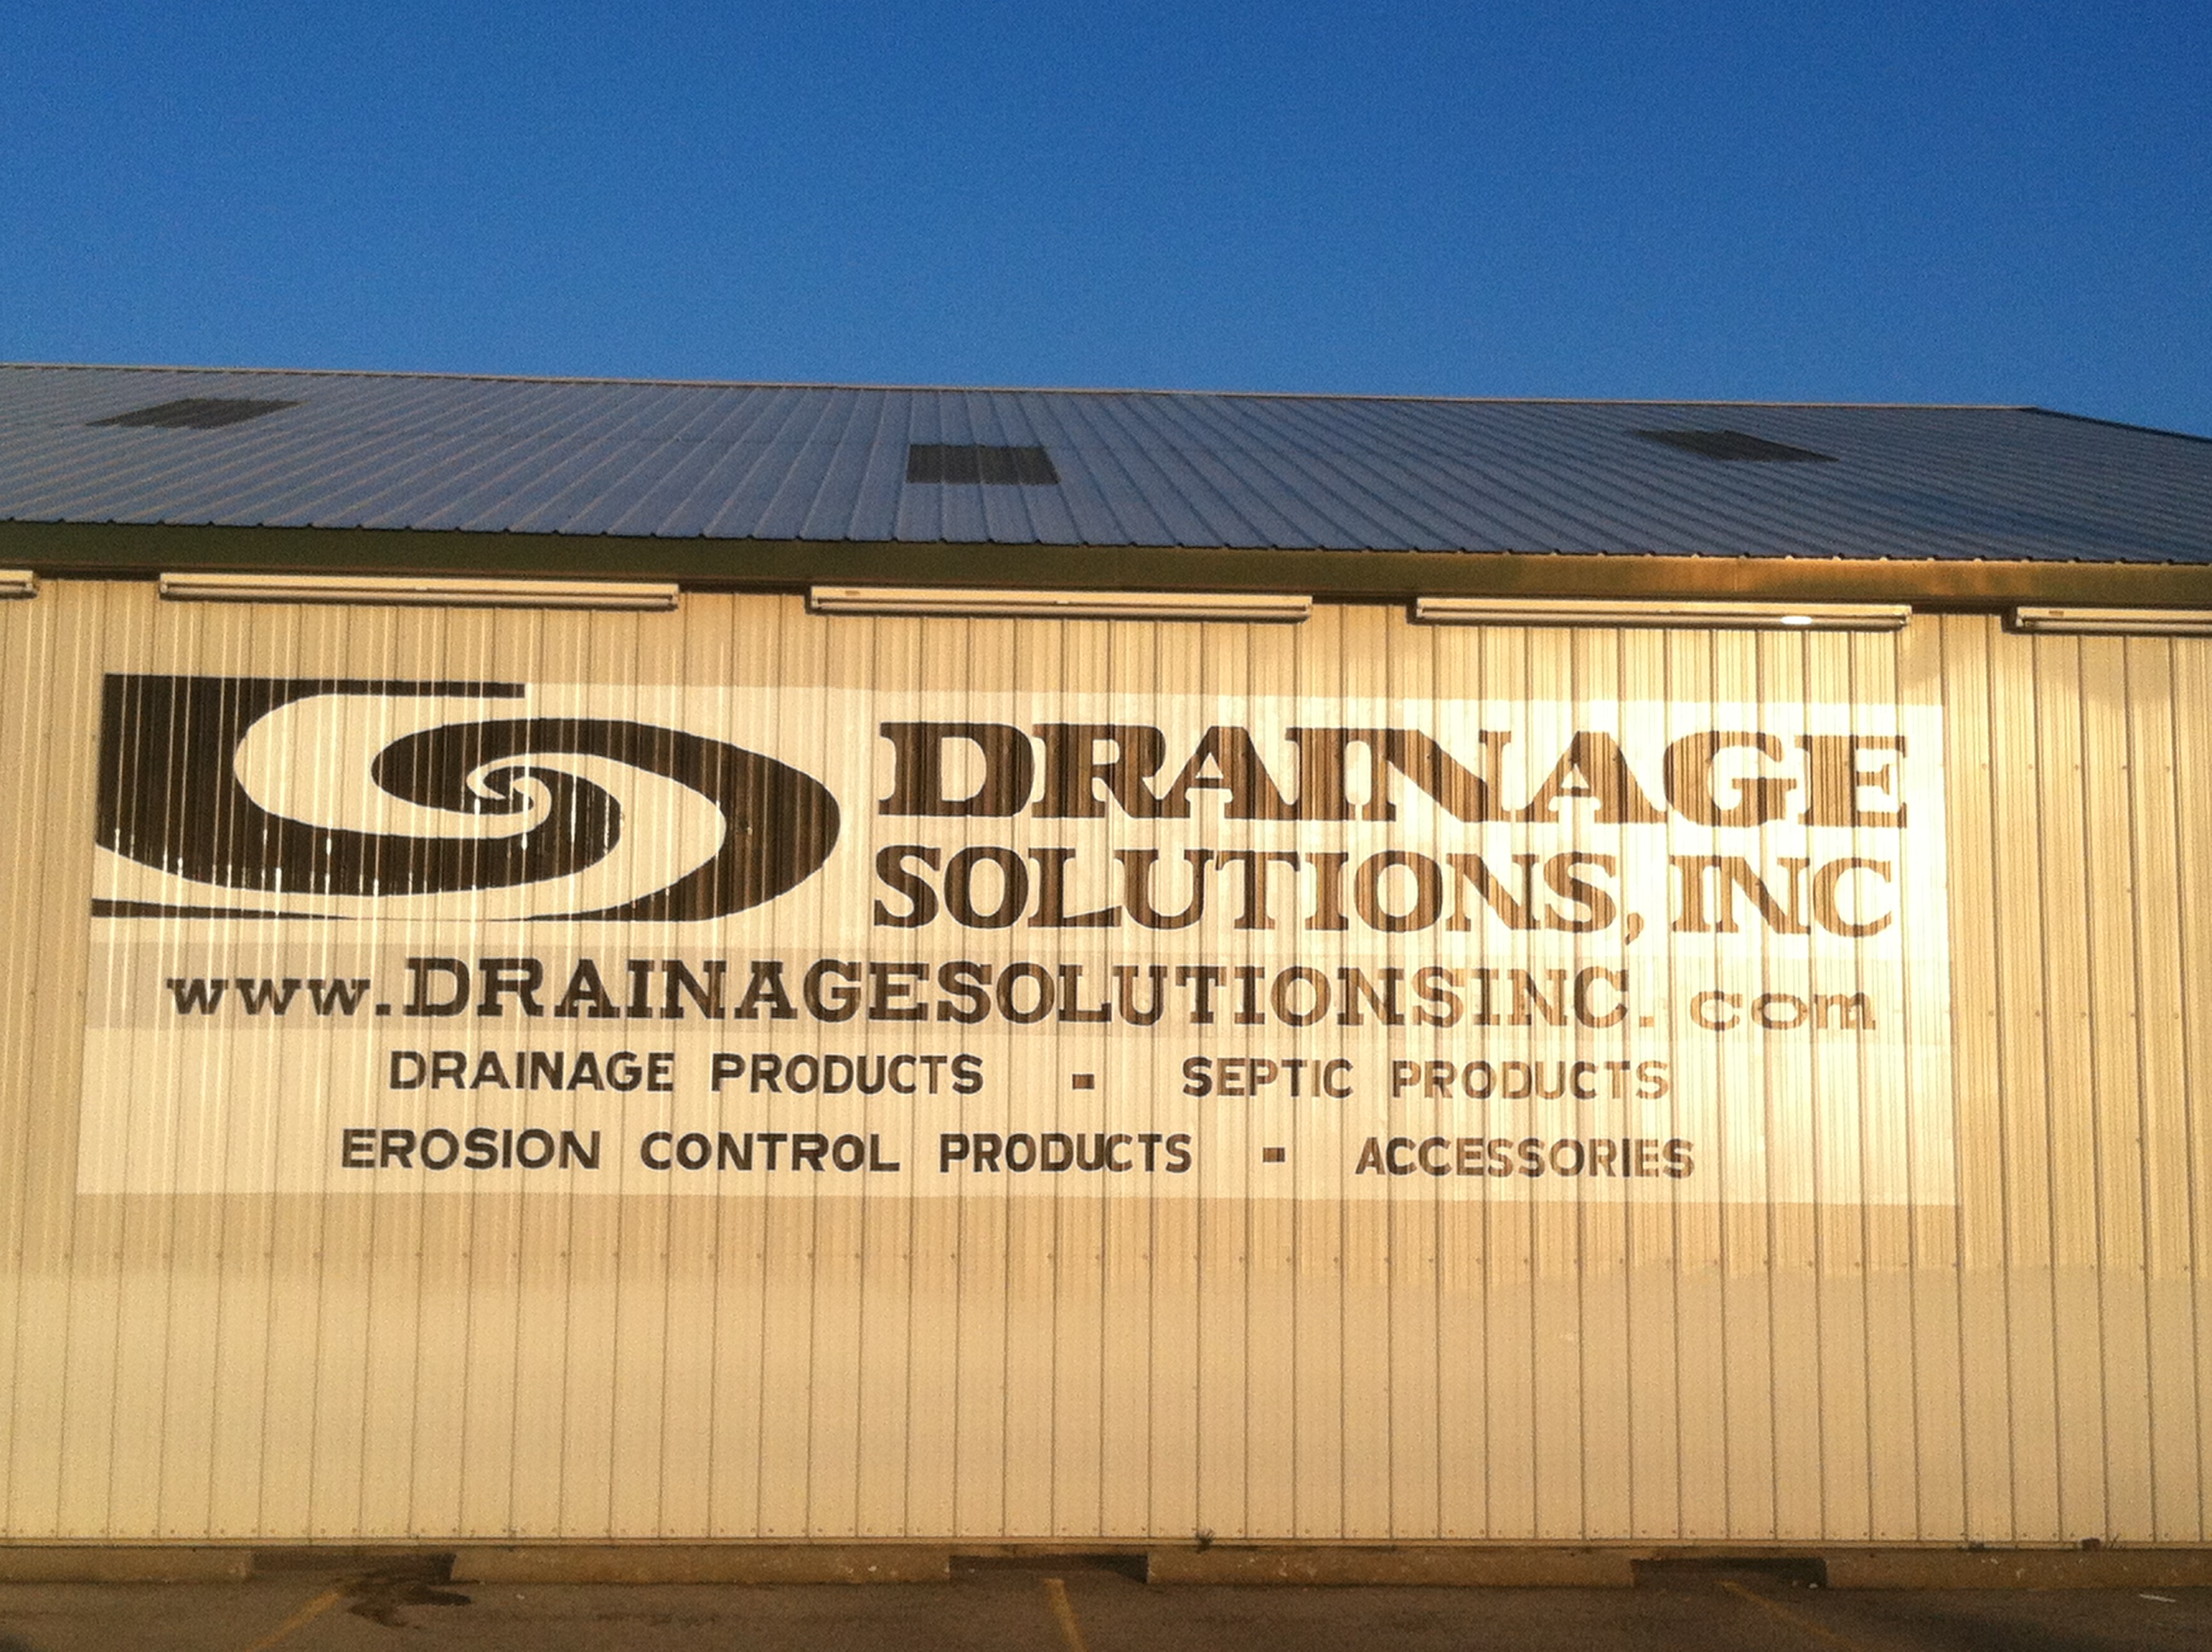 Drainage Solutions, Inc. image 6